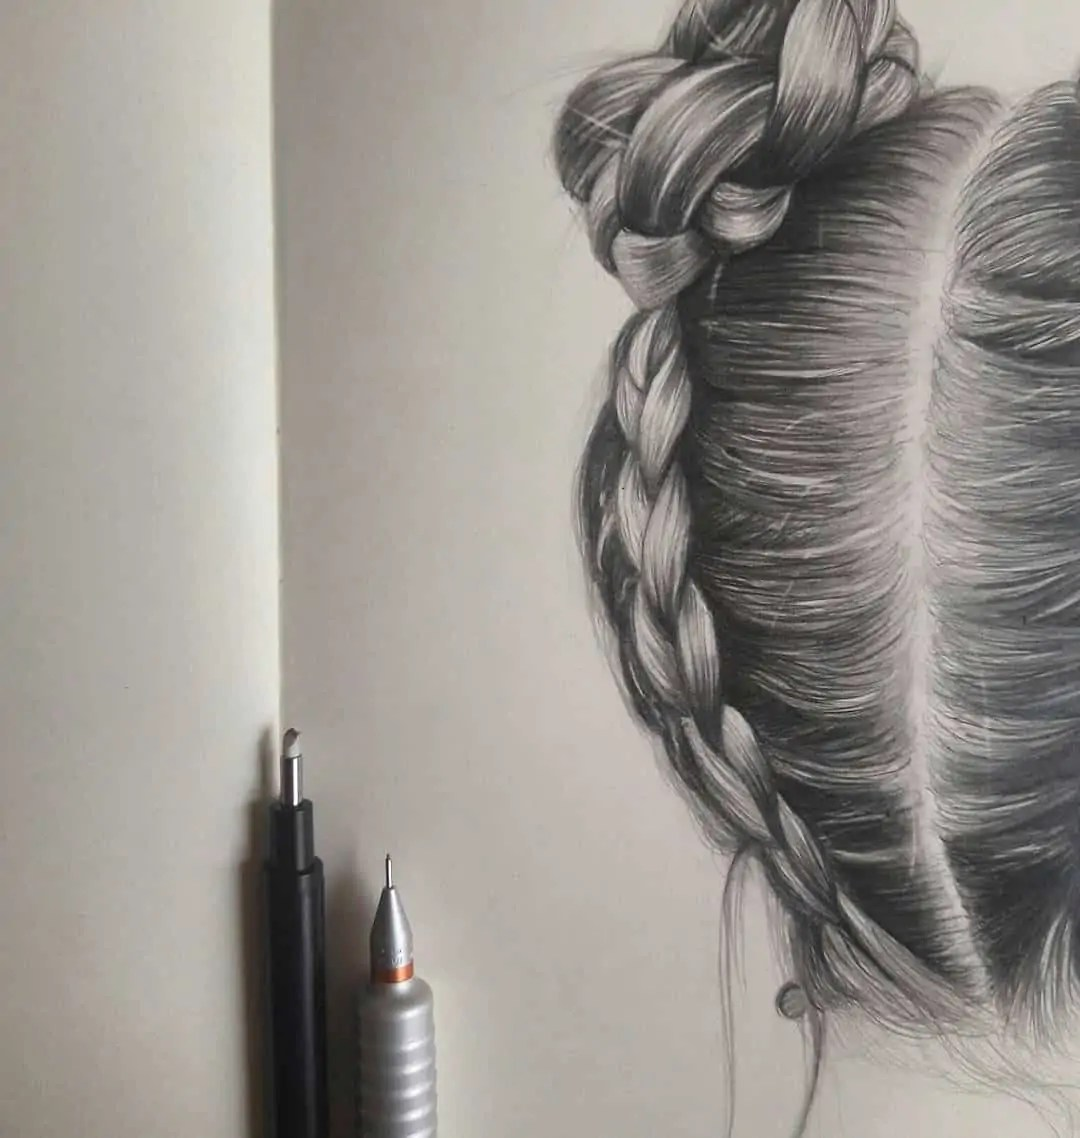 100+ Stunning Realistic Portrait Drawings 343